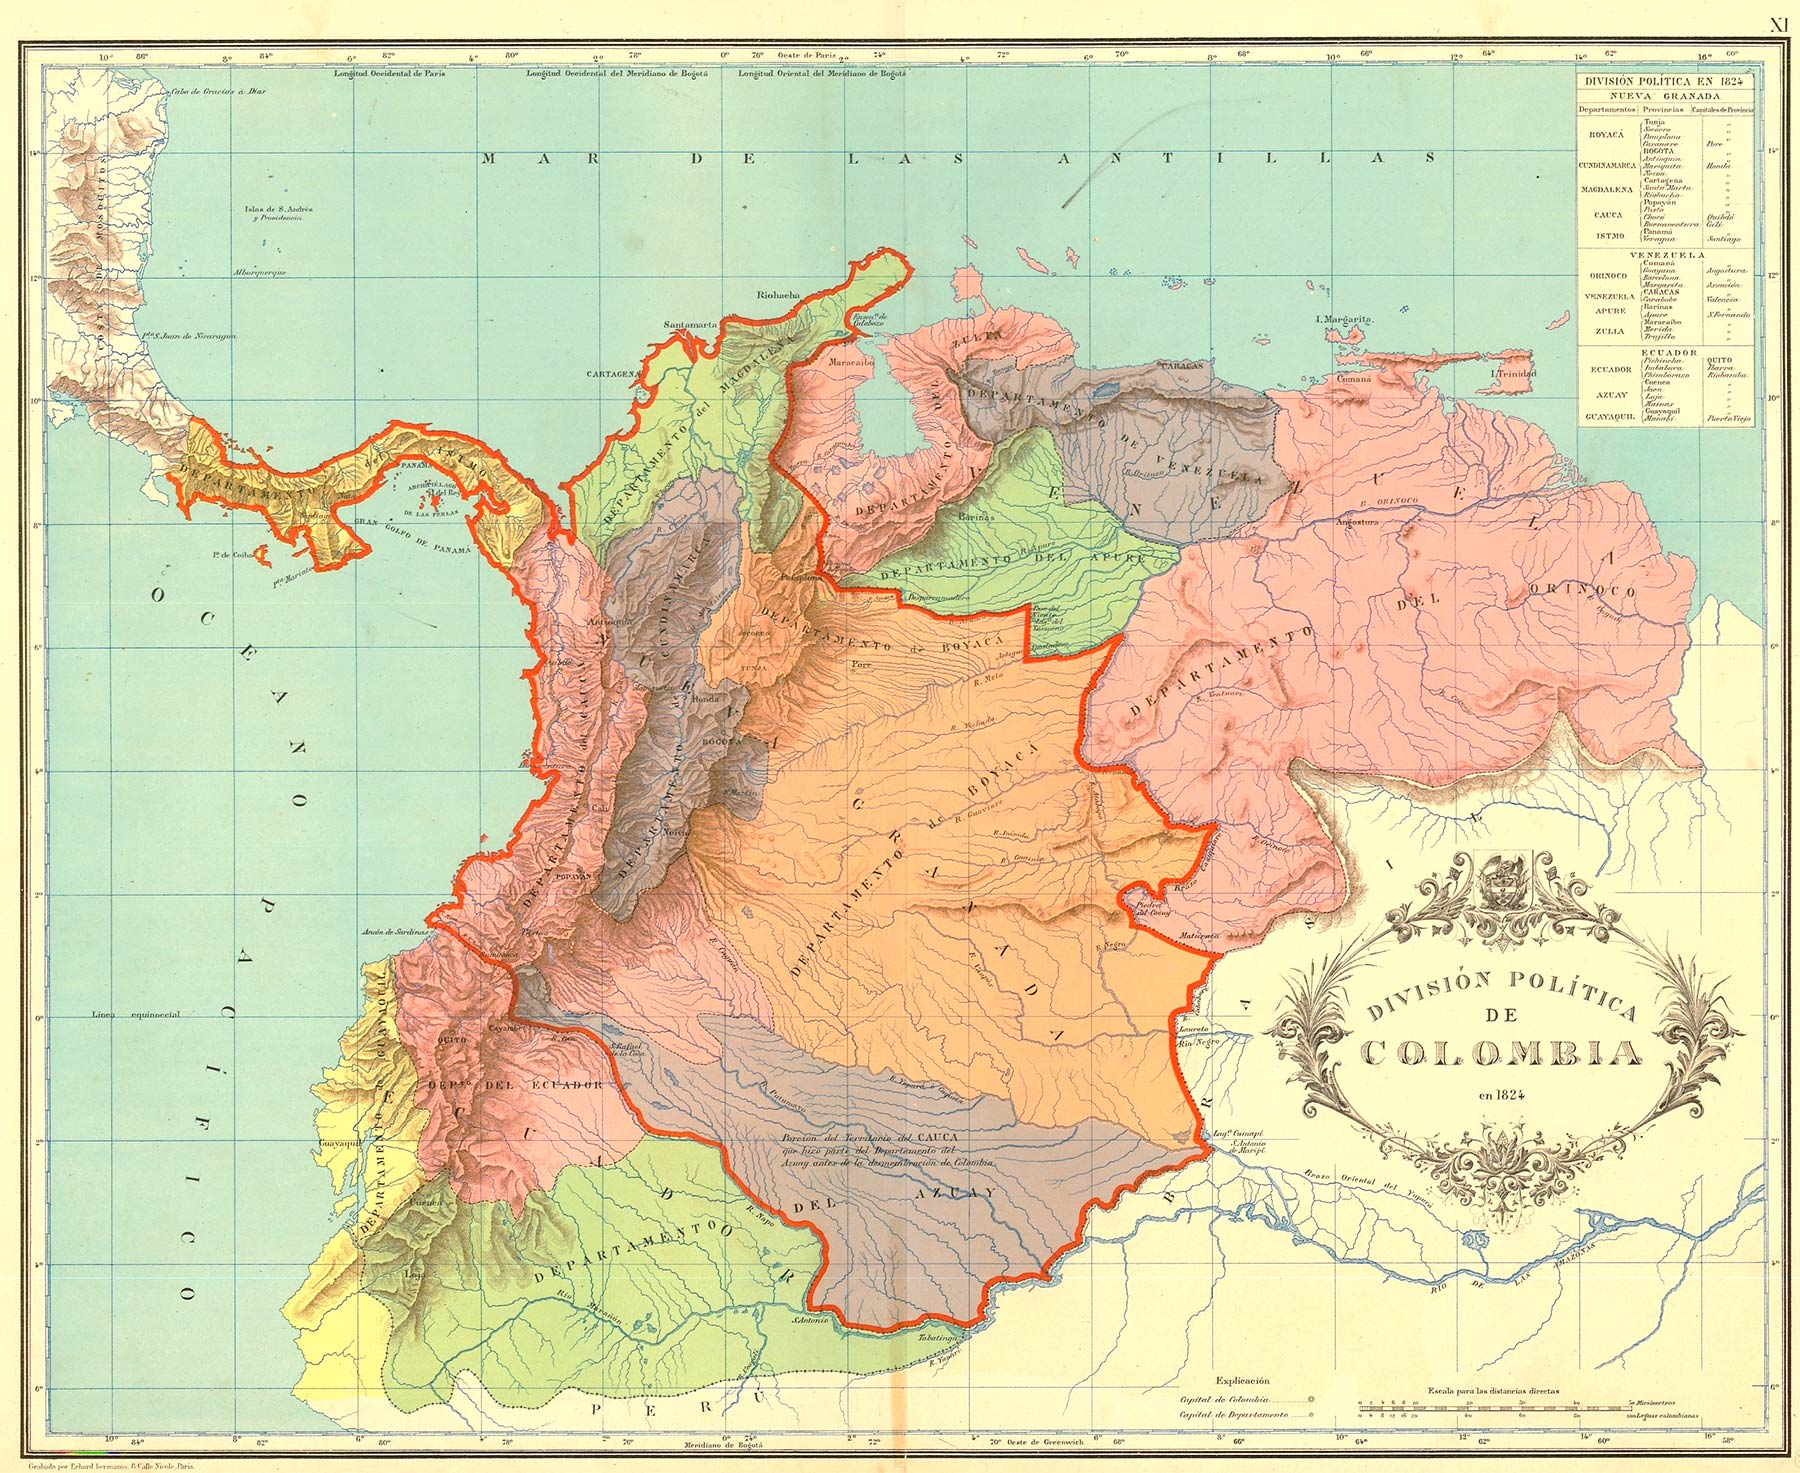 A map of Gran Colombia showing the 12 departments created in 1824 and territories disputed with neighboring countries.